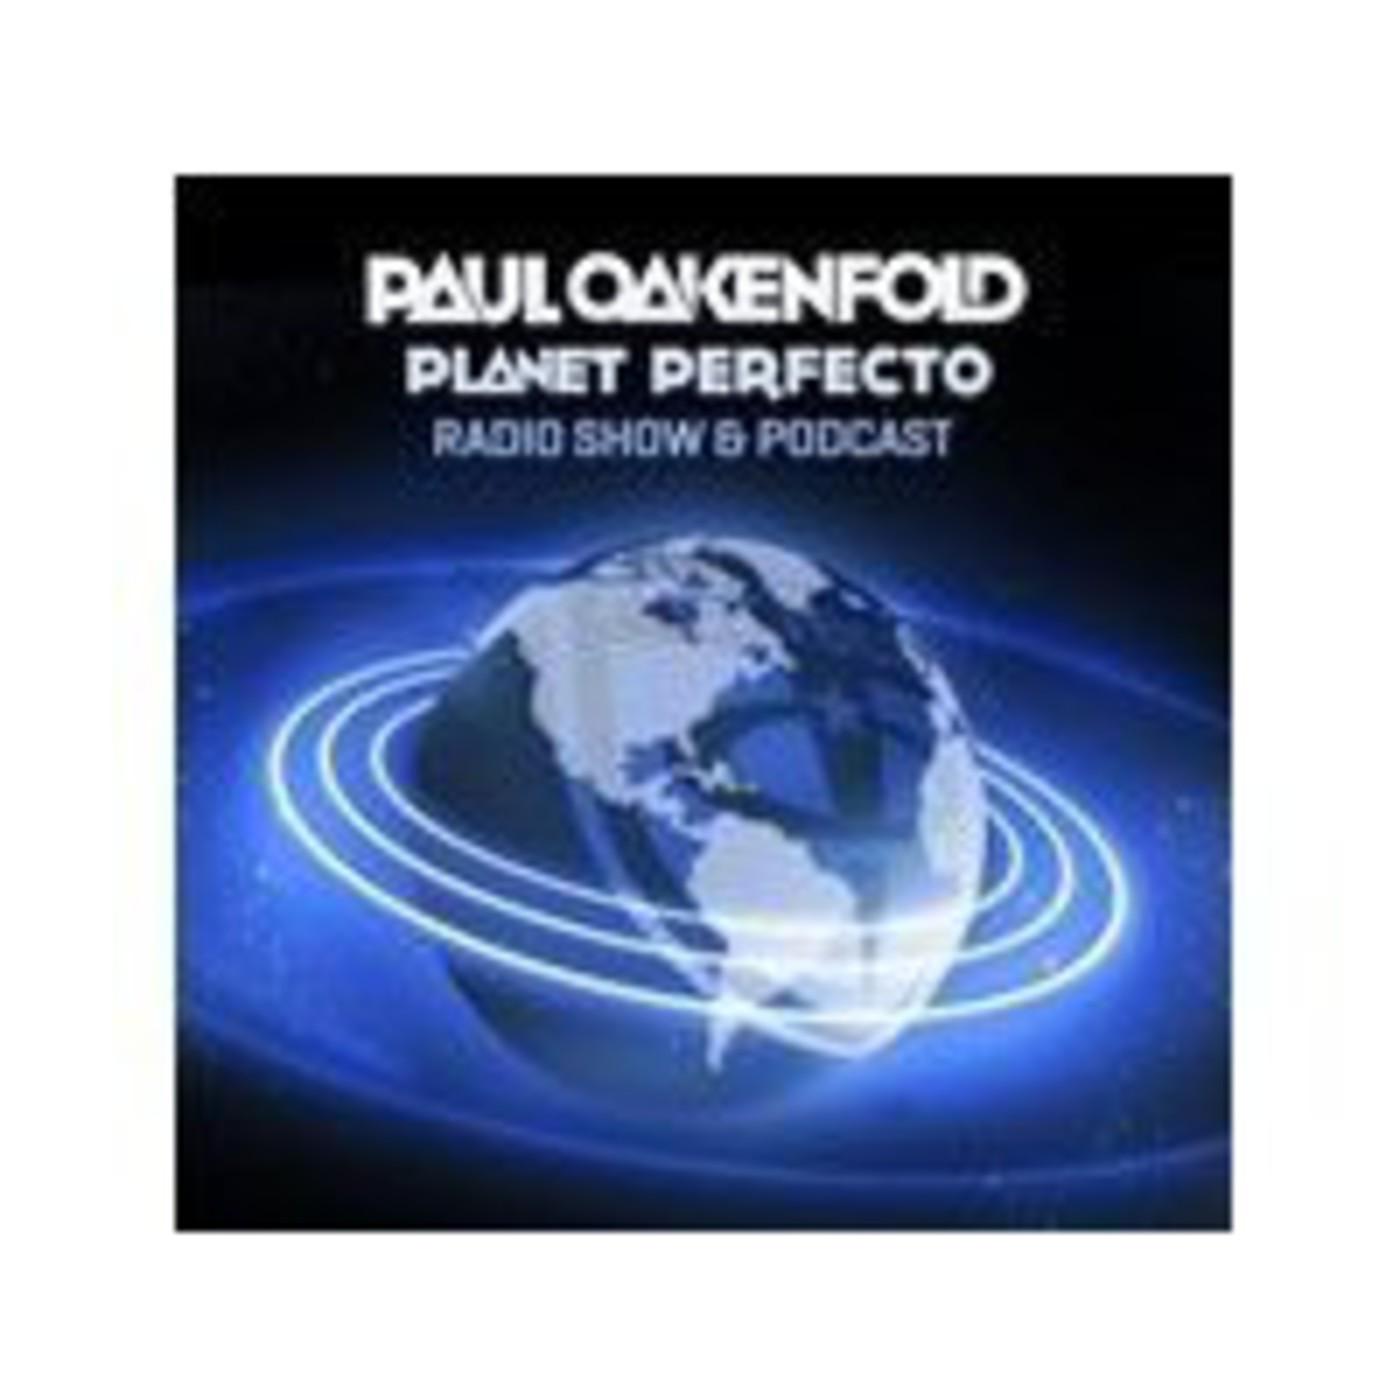 Planet Perfecto Podcast 516 ft. Paul Oakenfold